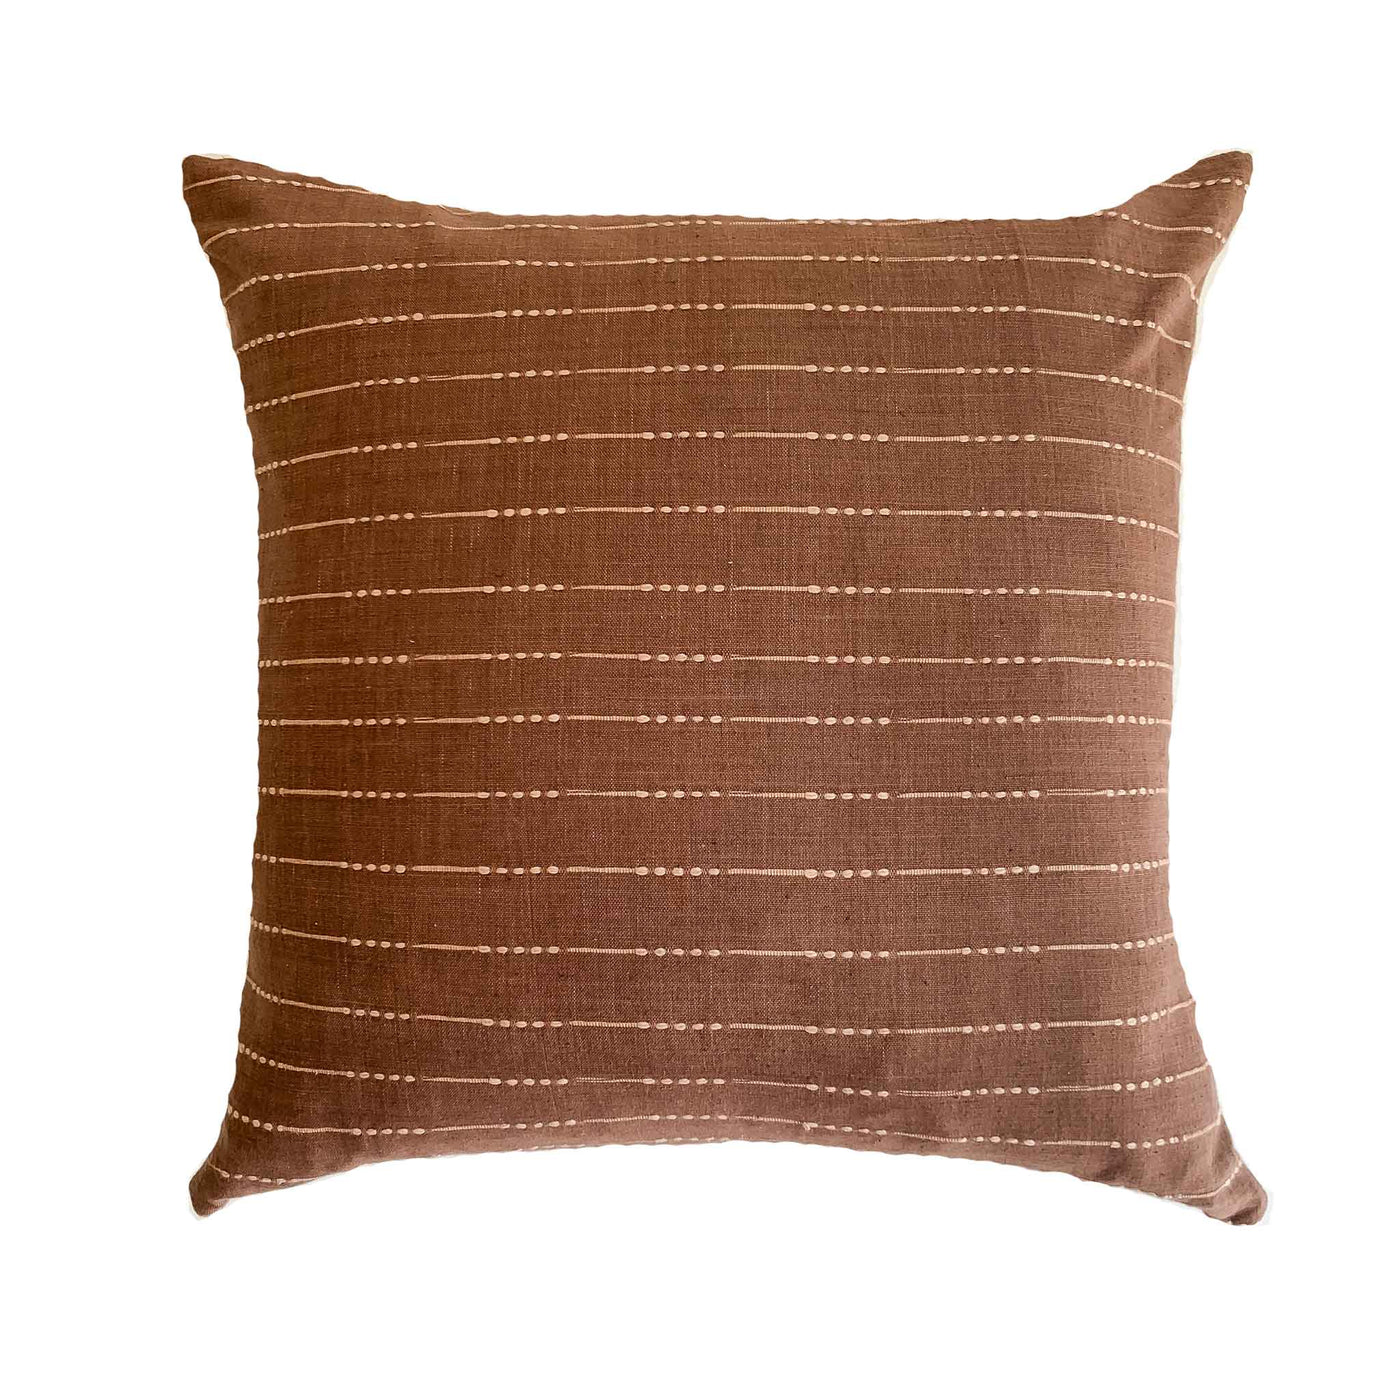 Brown Boho Hmong Batik Pillow Cover - - Studio Pillows